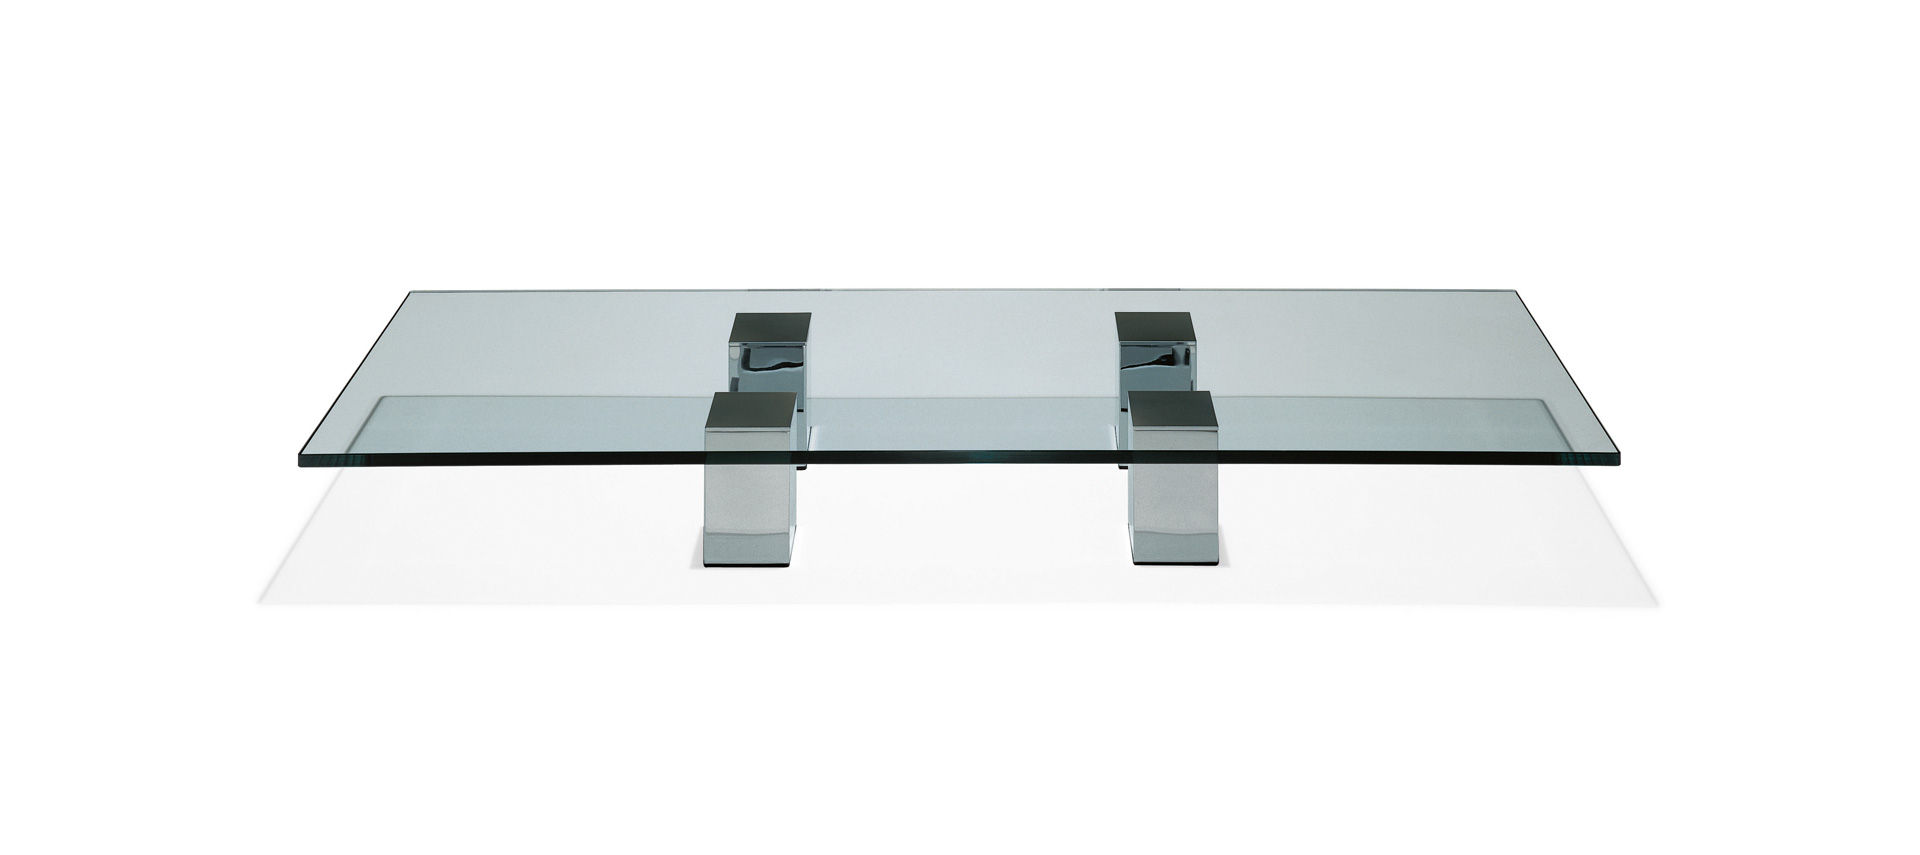 Low Glass Coffee Table Of The Most Favorite Coffee Tables In The Last Few Years So Are You Interested To Have One If Yes (View 6 of 10)